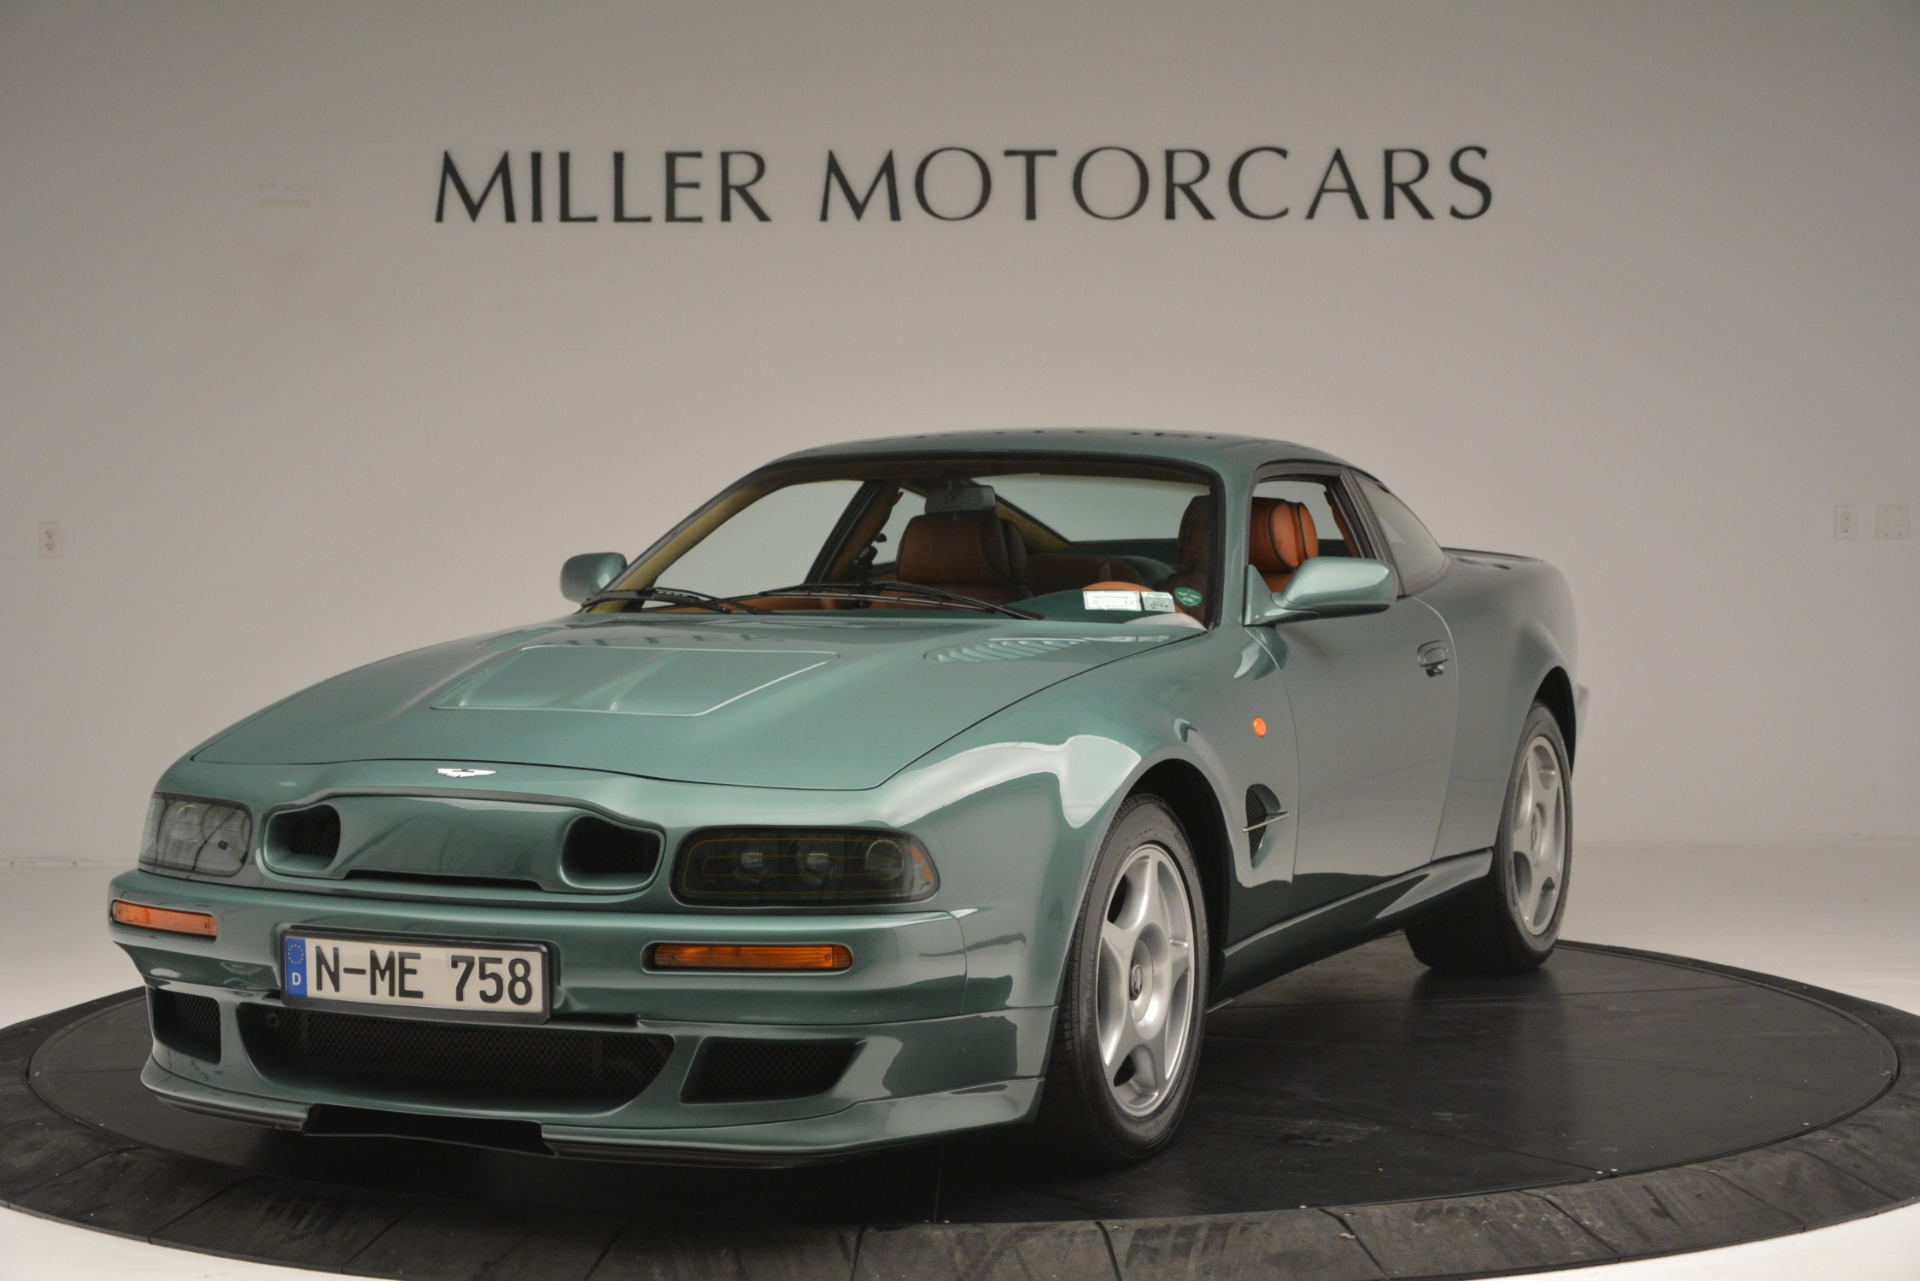 Used 1999 Aston Martin V8 Vantage Le Mans V600 Coupe For Sale In Greenwich, CT 2789_p2